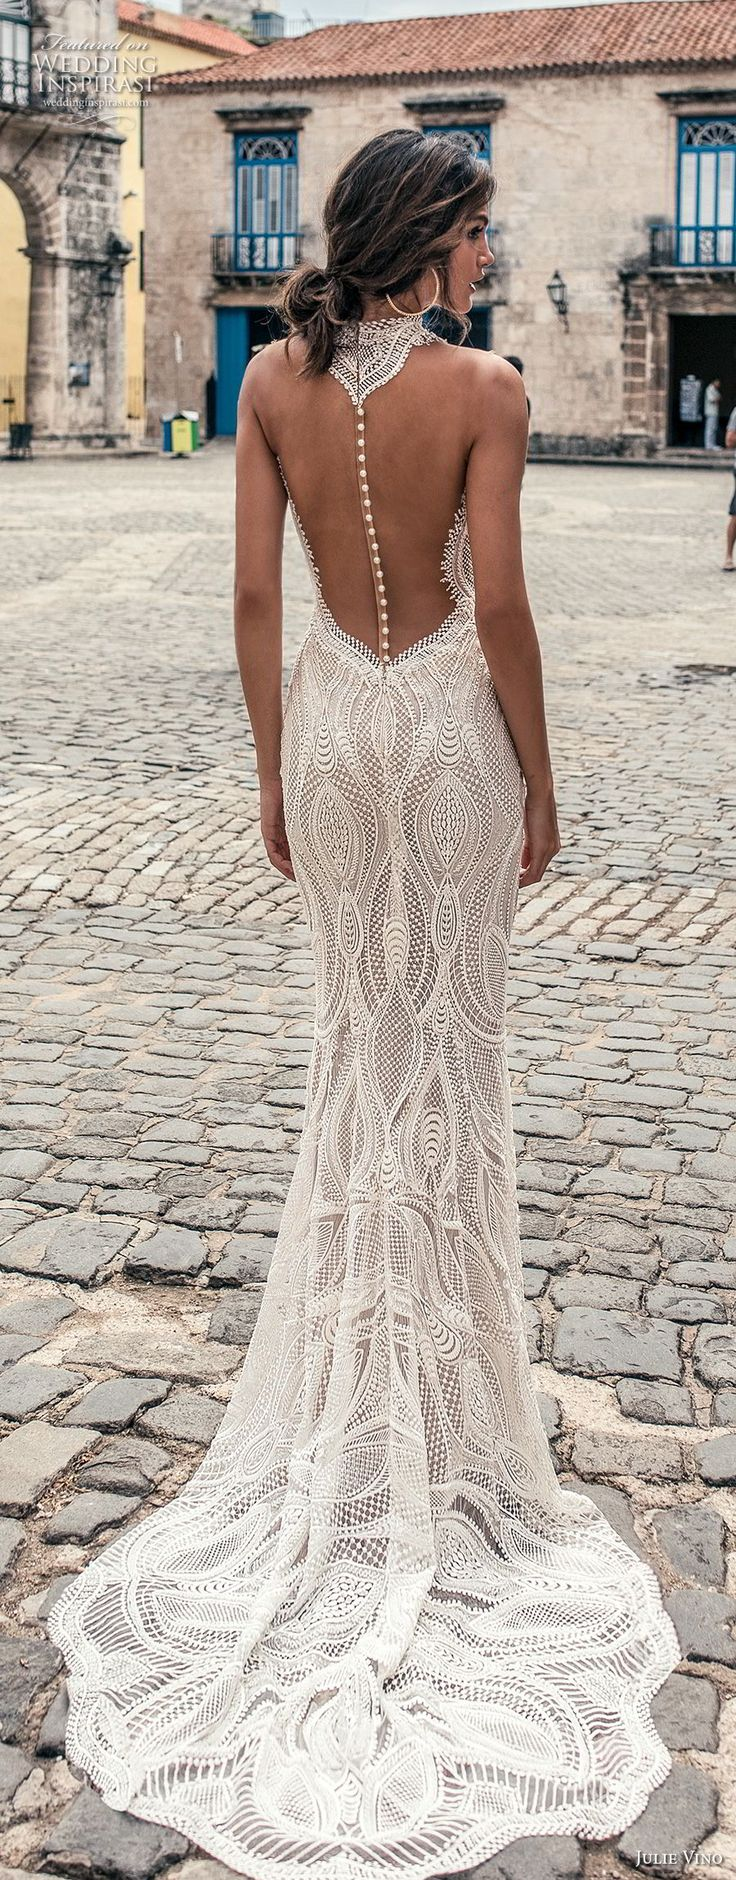 julie vino fall 2018 havana sleeveless halter jewel neck deep plunging sweetheart neck full embellishment elegant sexy fit and flare sheath wedding dress shear button back sweep train (13) bv -- Julie Vino Fall 2018 Wedding Dresses